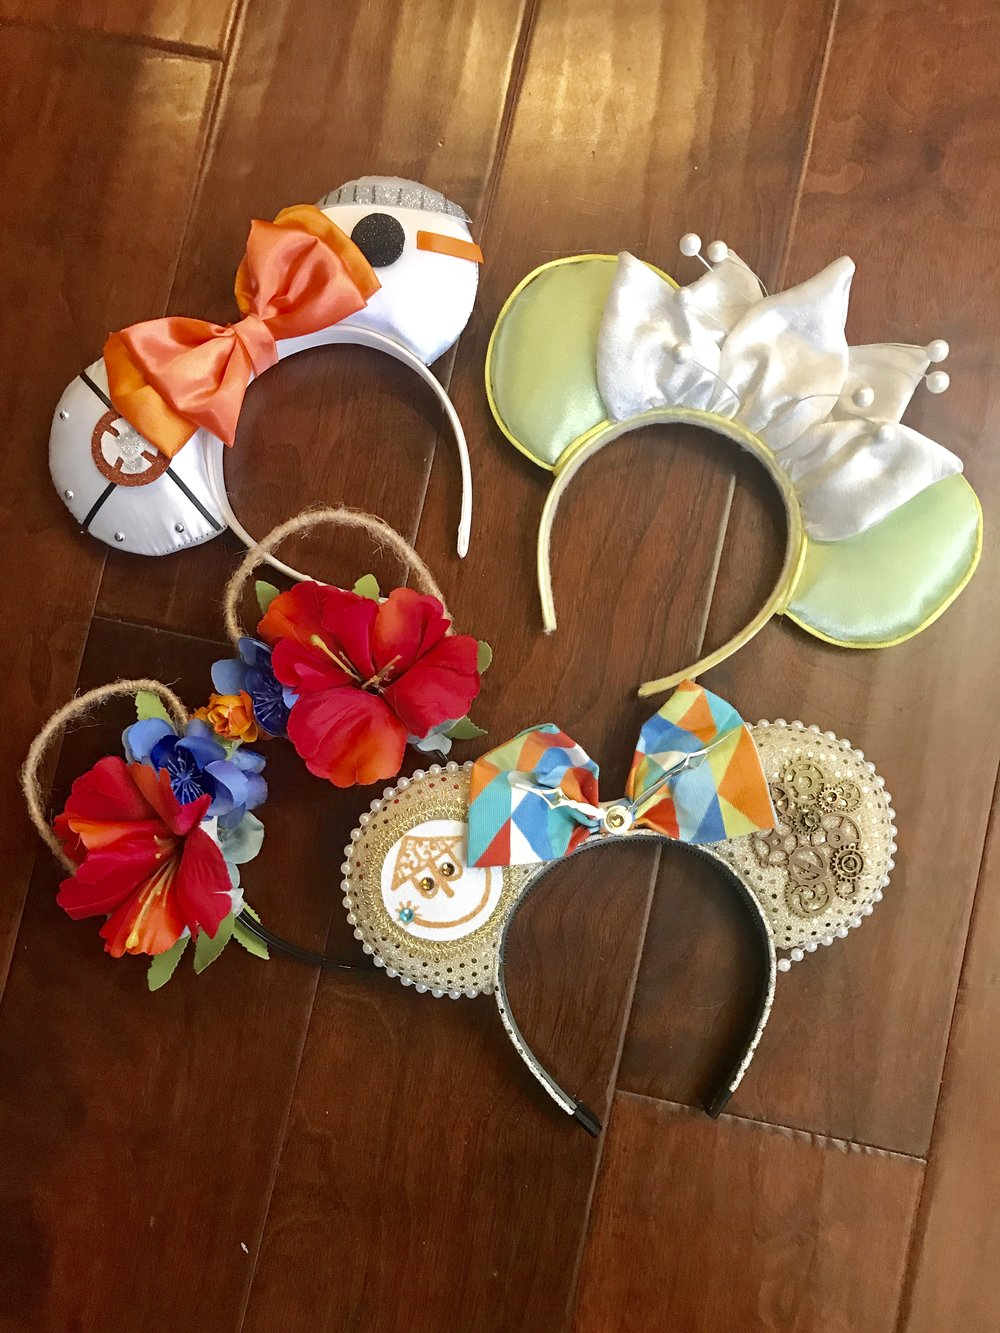 Minnie Mouse ear headbands from various Etsy sellers.